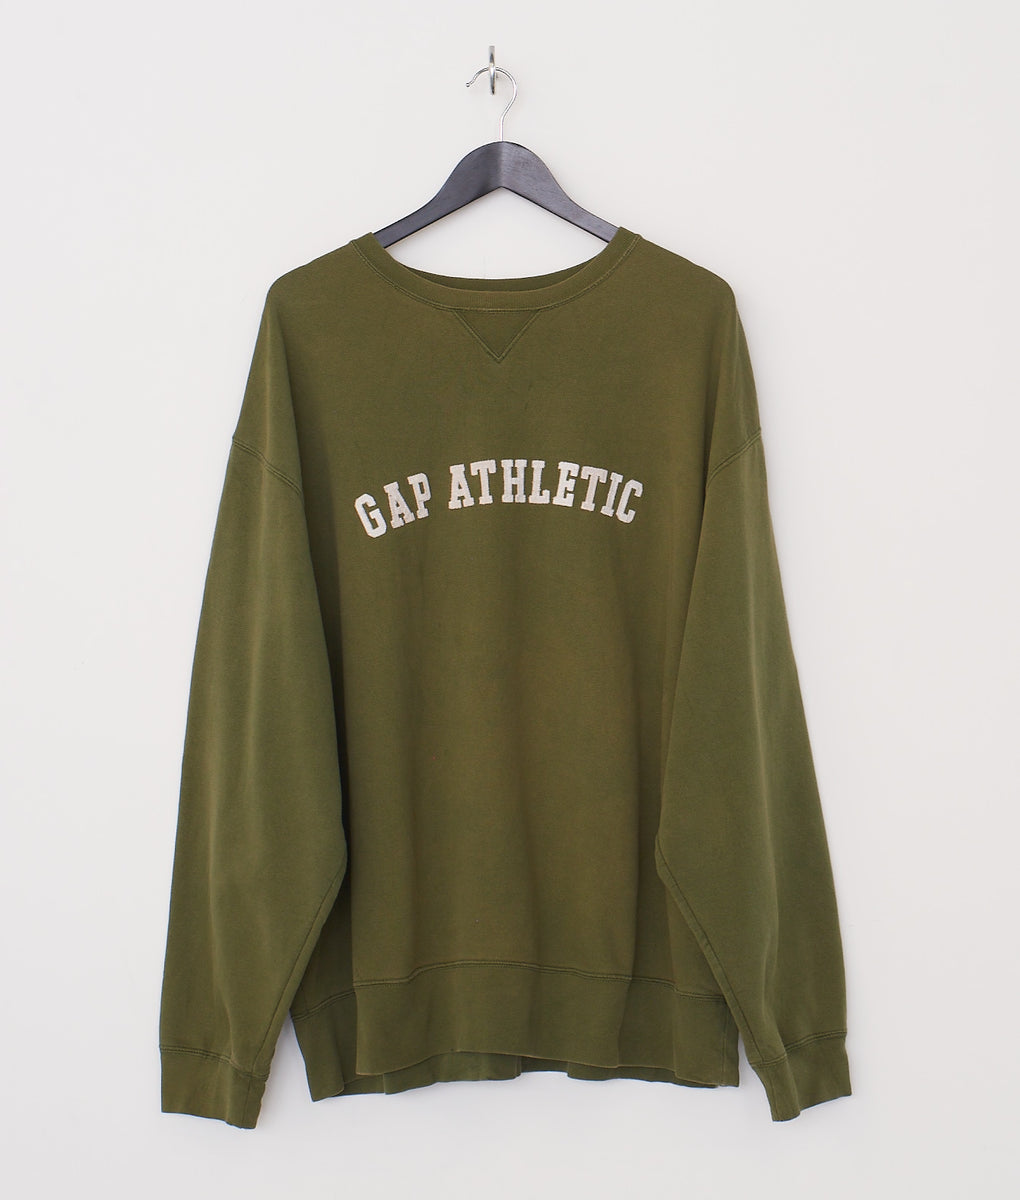 Vintage Gap Athletic Sweat (XXL)